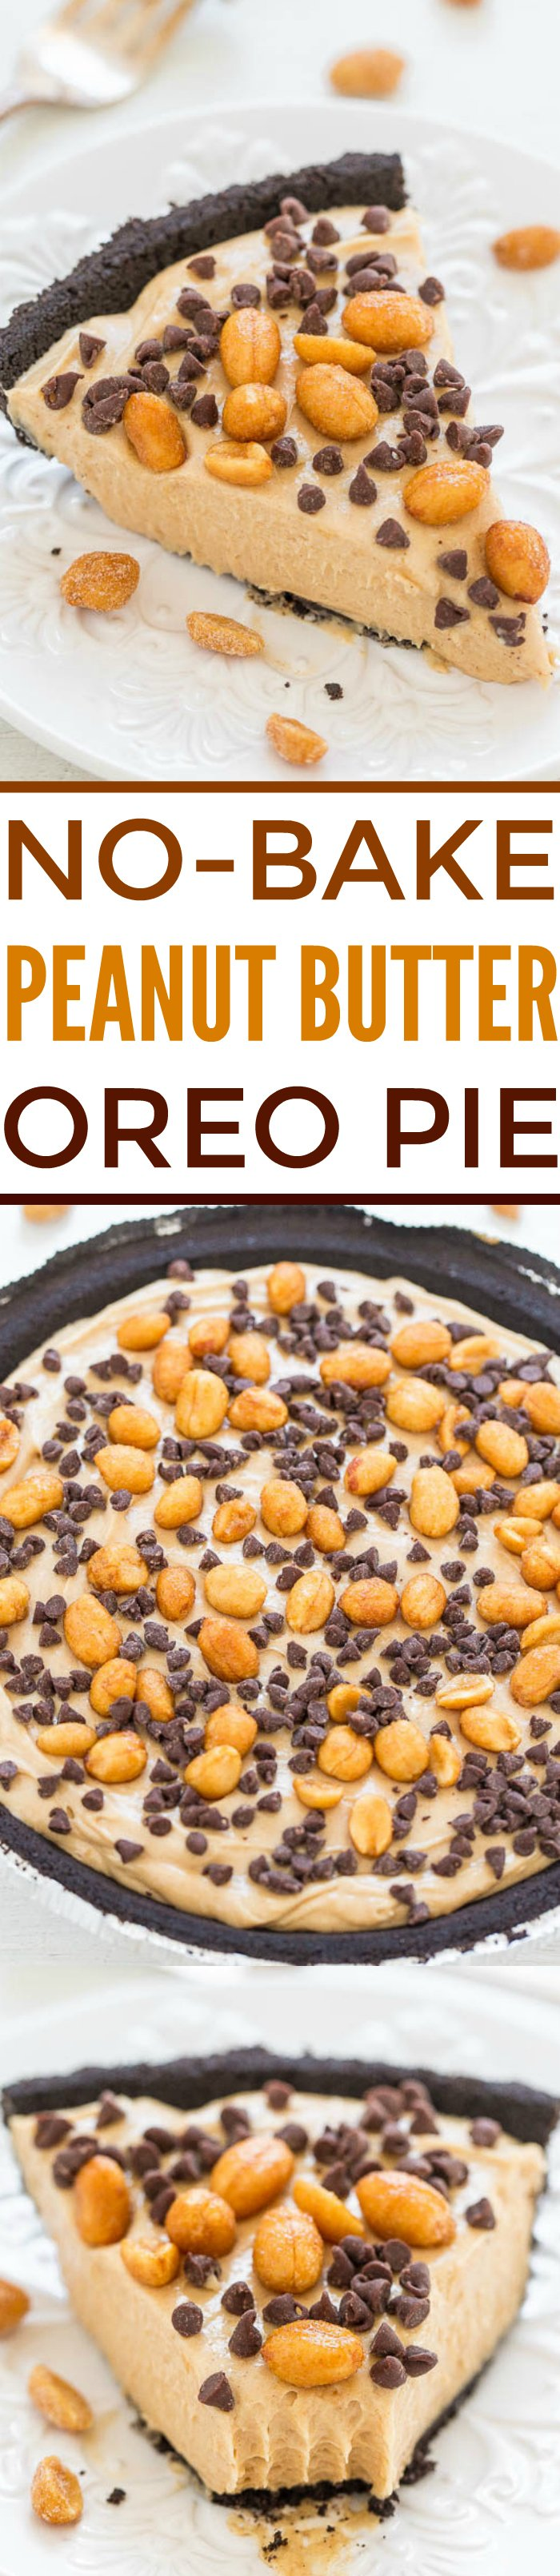 Three picture collage of no-bake peanut butter oreo pie with graphic title